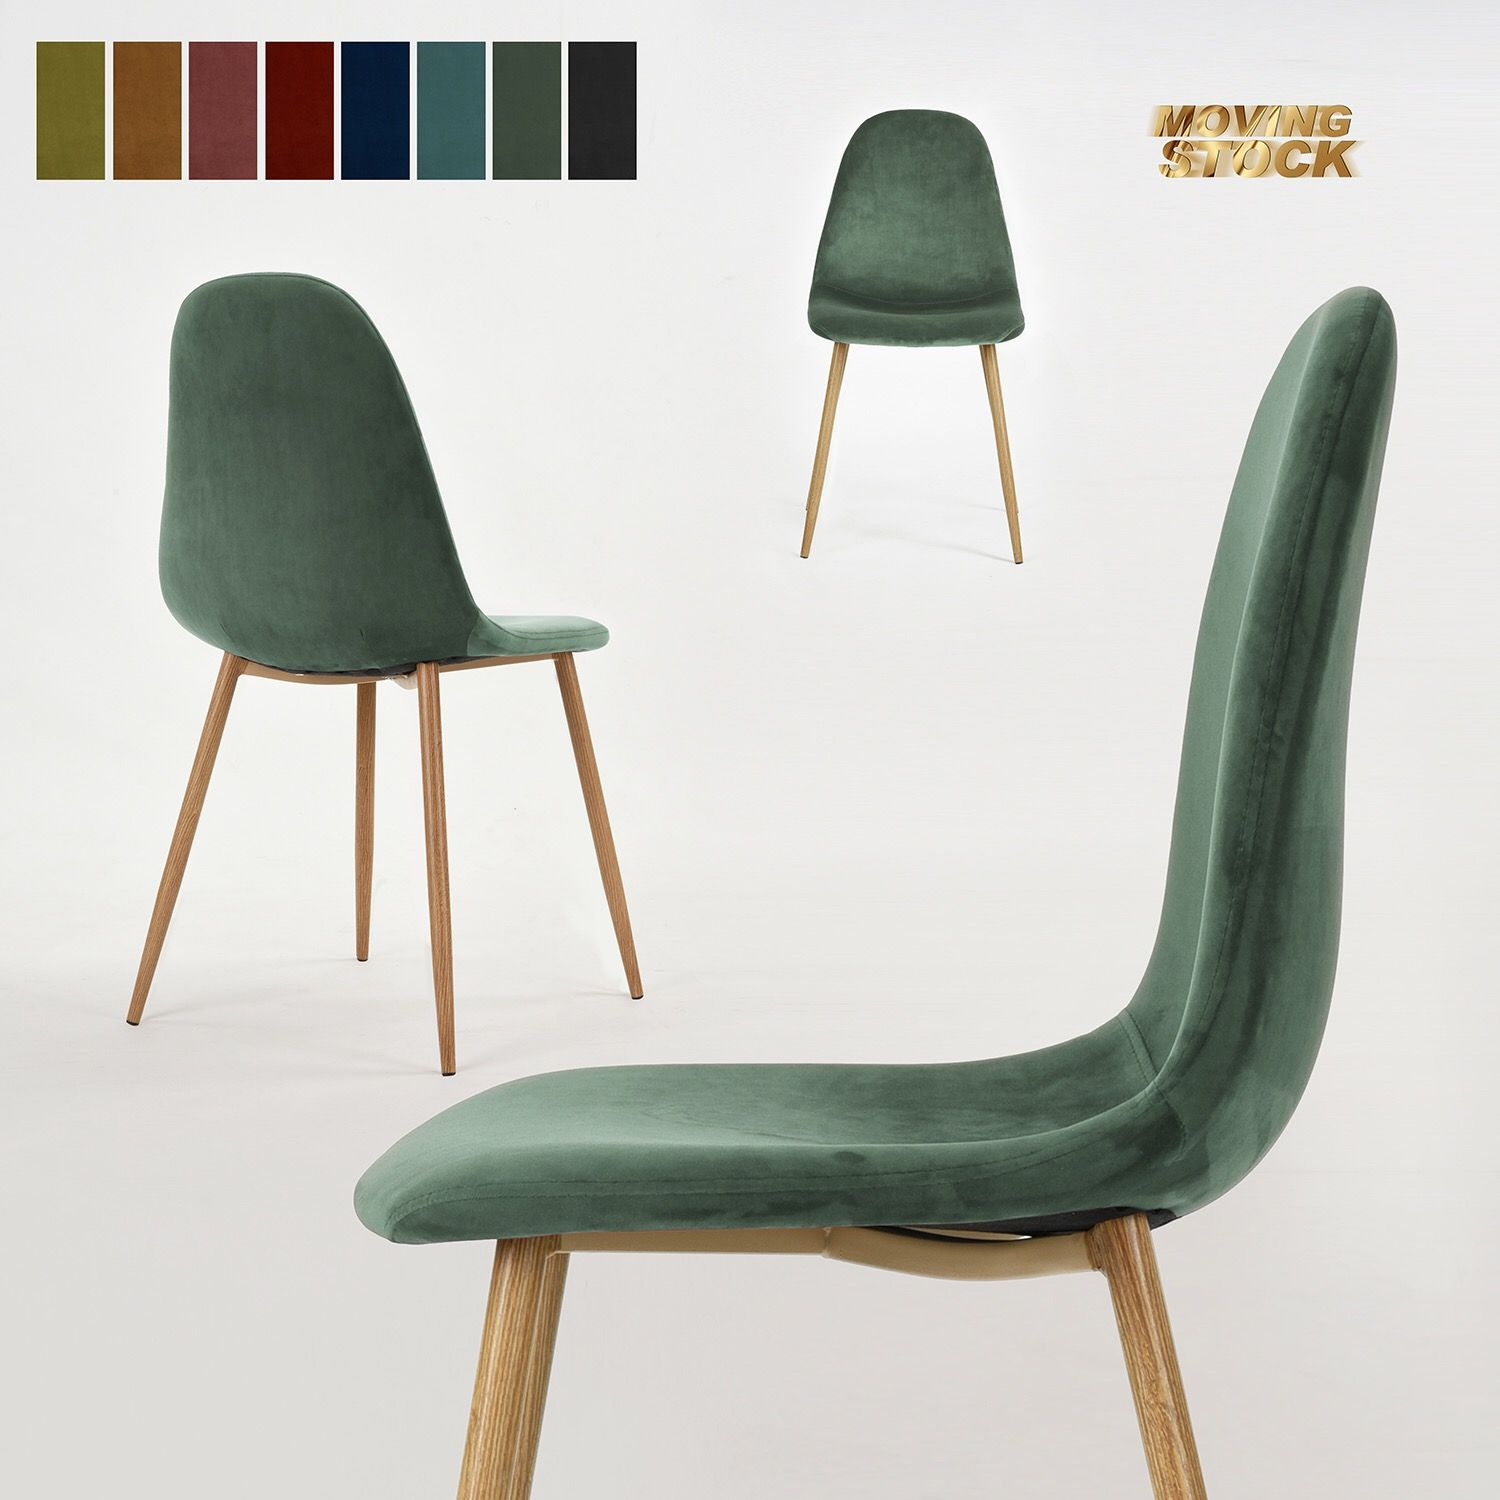 Eames style dining chair,velvet seat,metal leg with